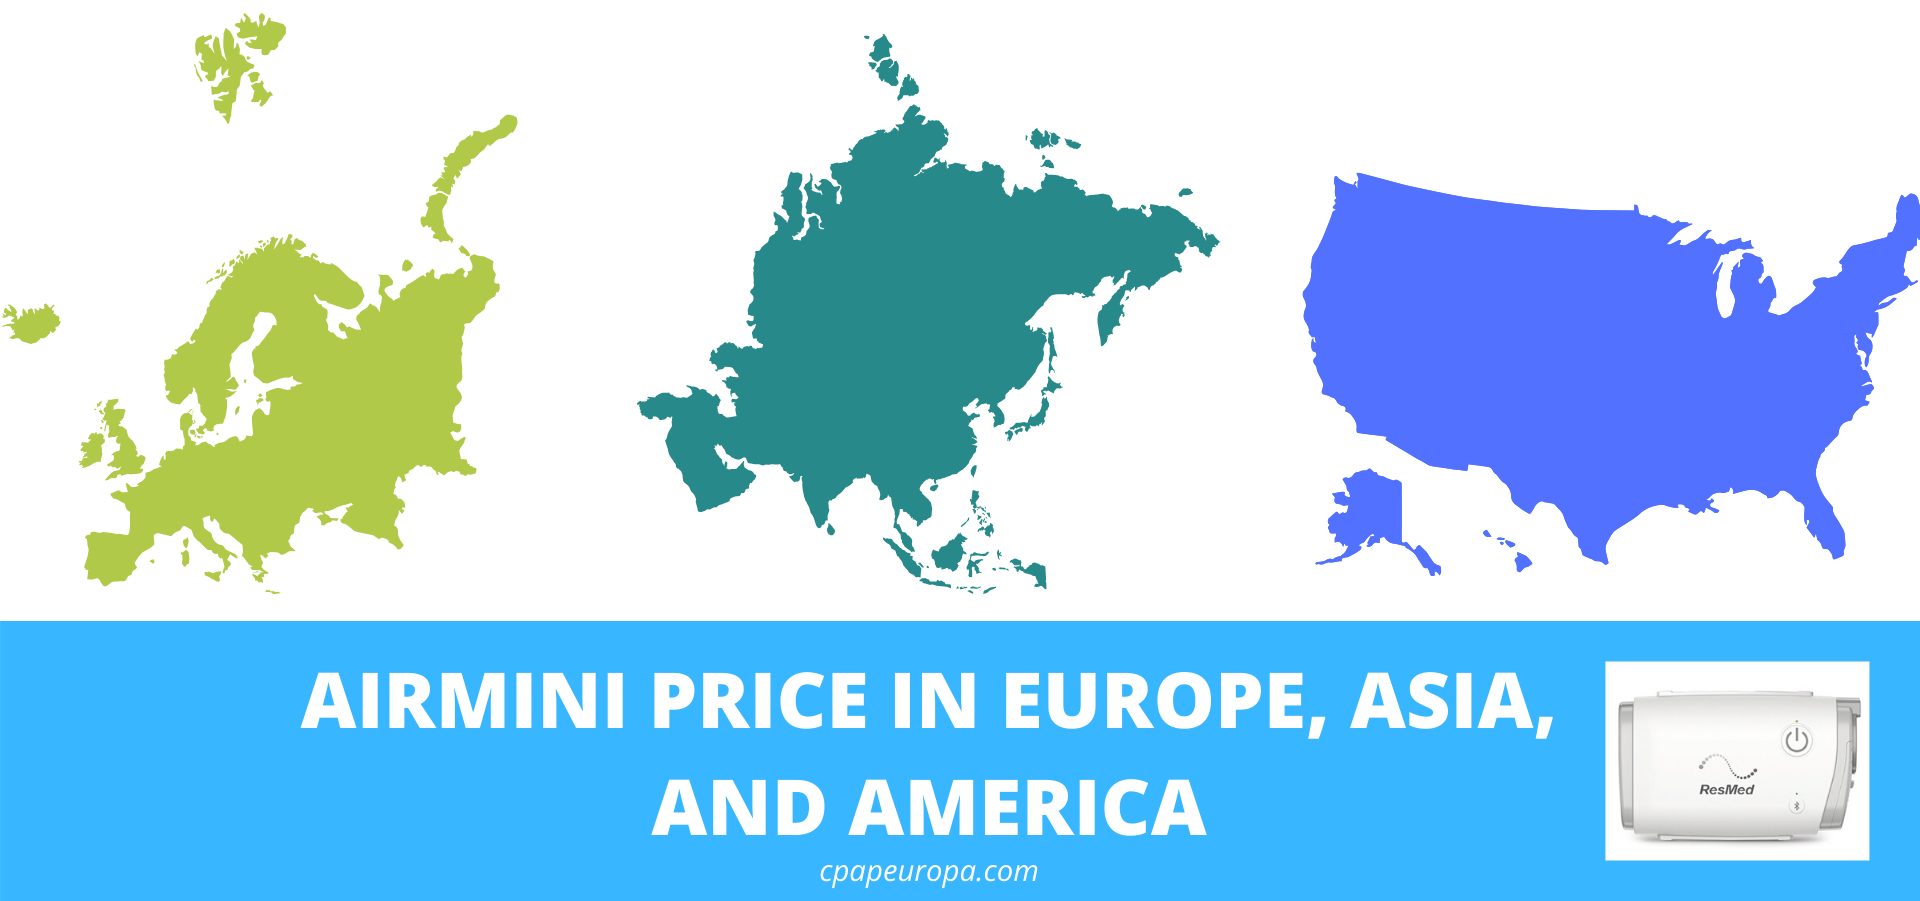 Resmed Airmini Travel CPAP Price Europe Asia America chart.